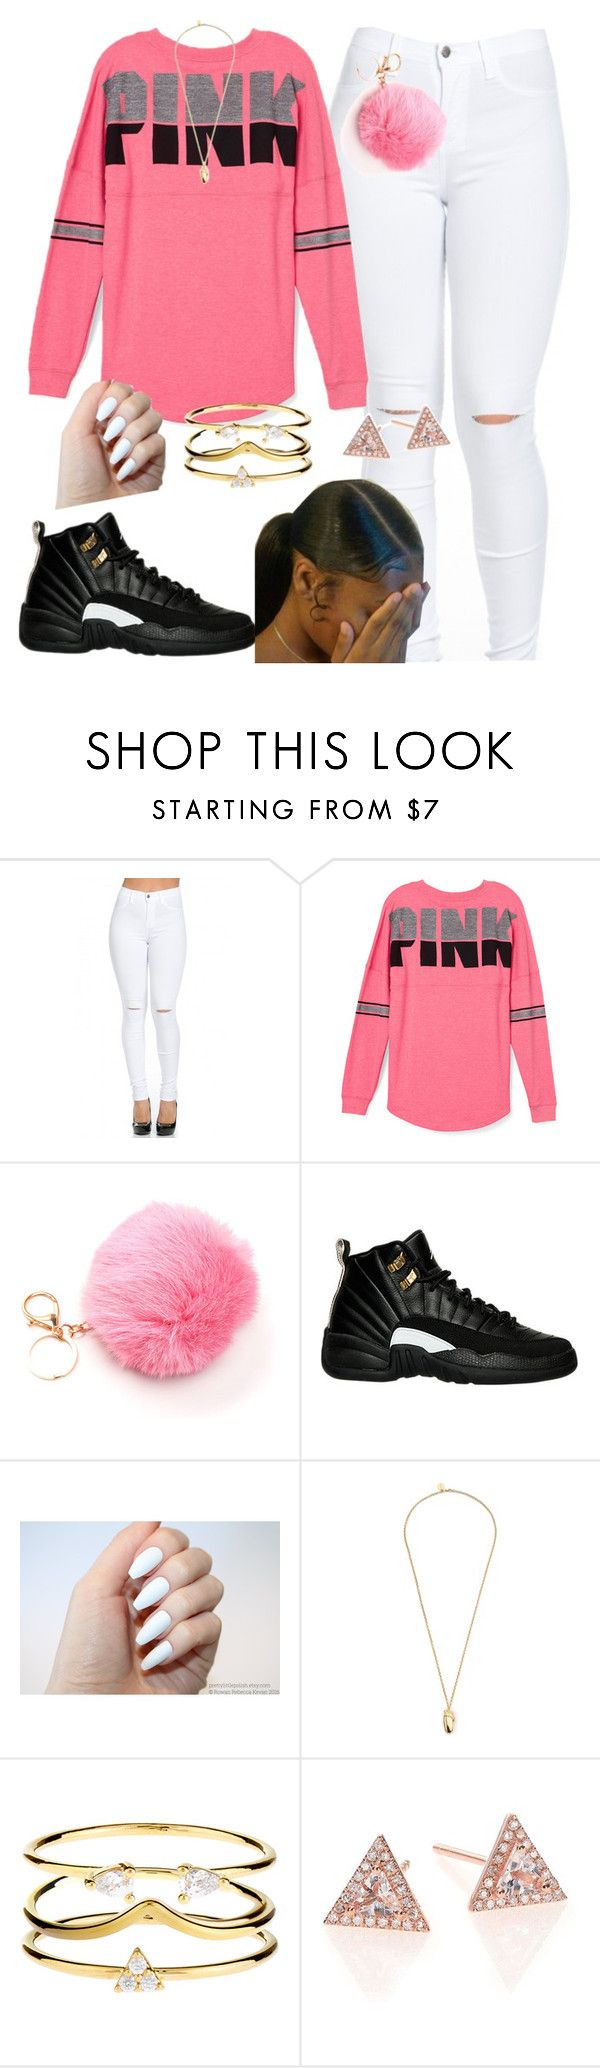 """Untitled #301"" by queen-sugah900 ❤ liked on Polyvore featuring Victoria's Secret PINK, Pembe Club, Accessorize and EF Collection"